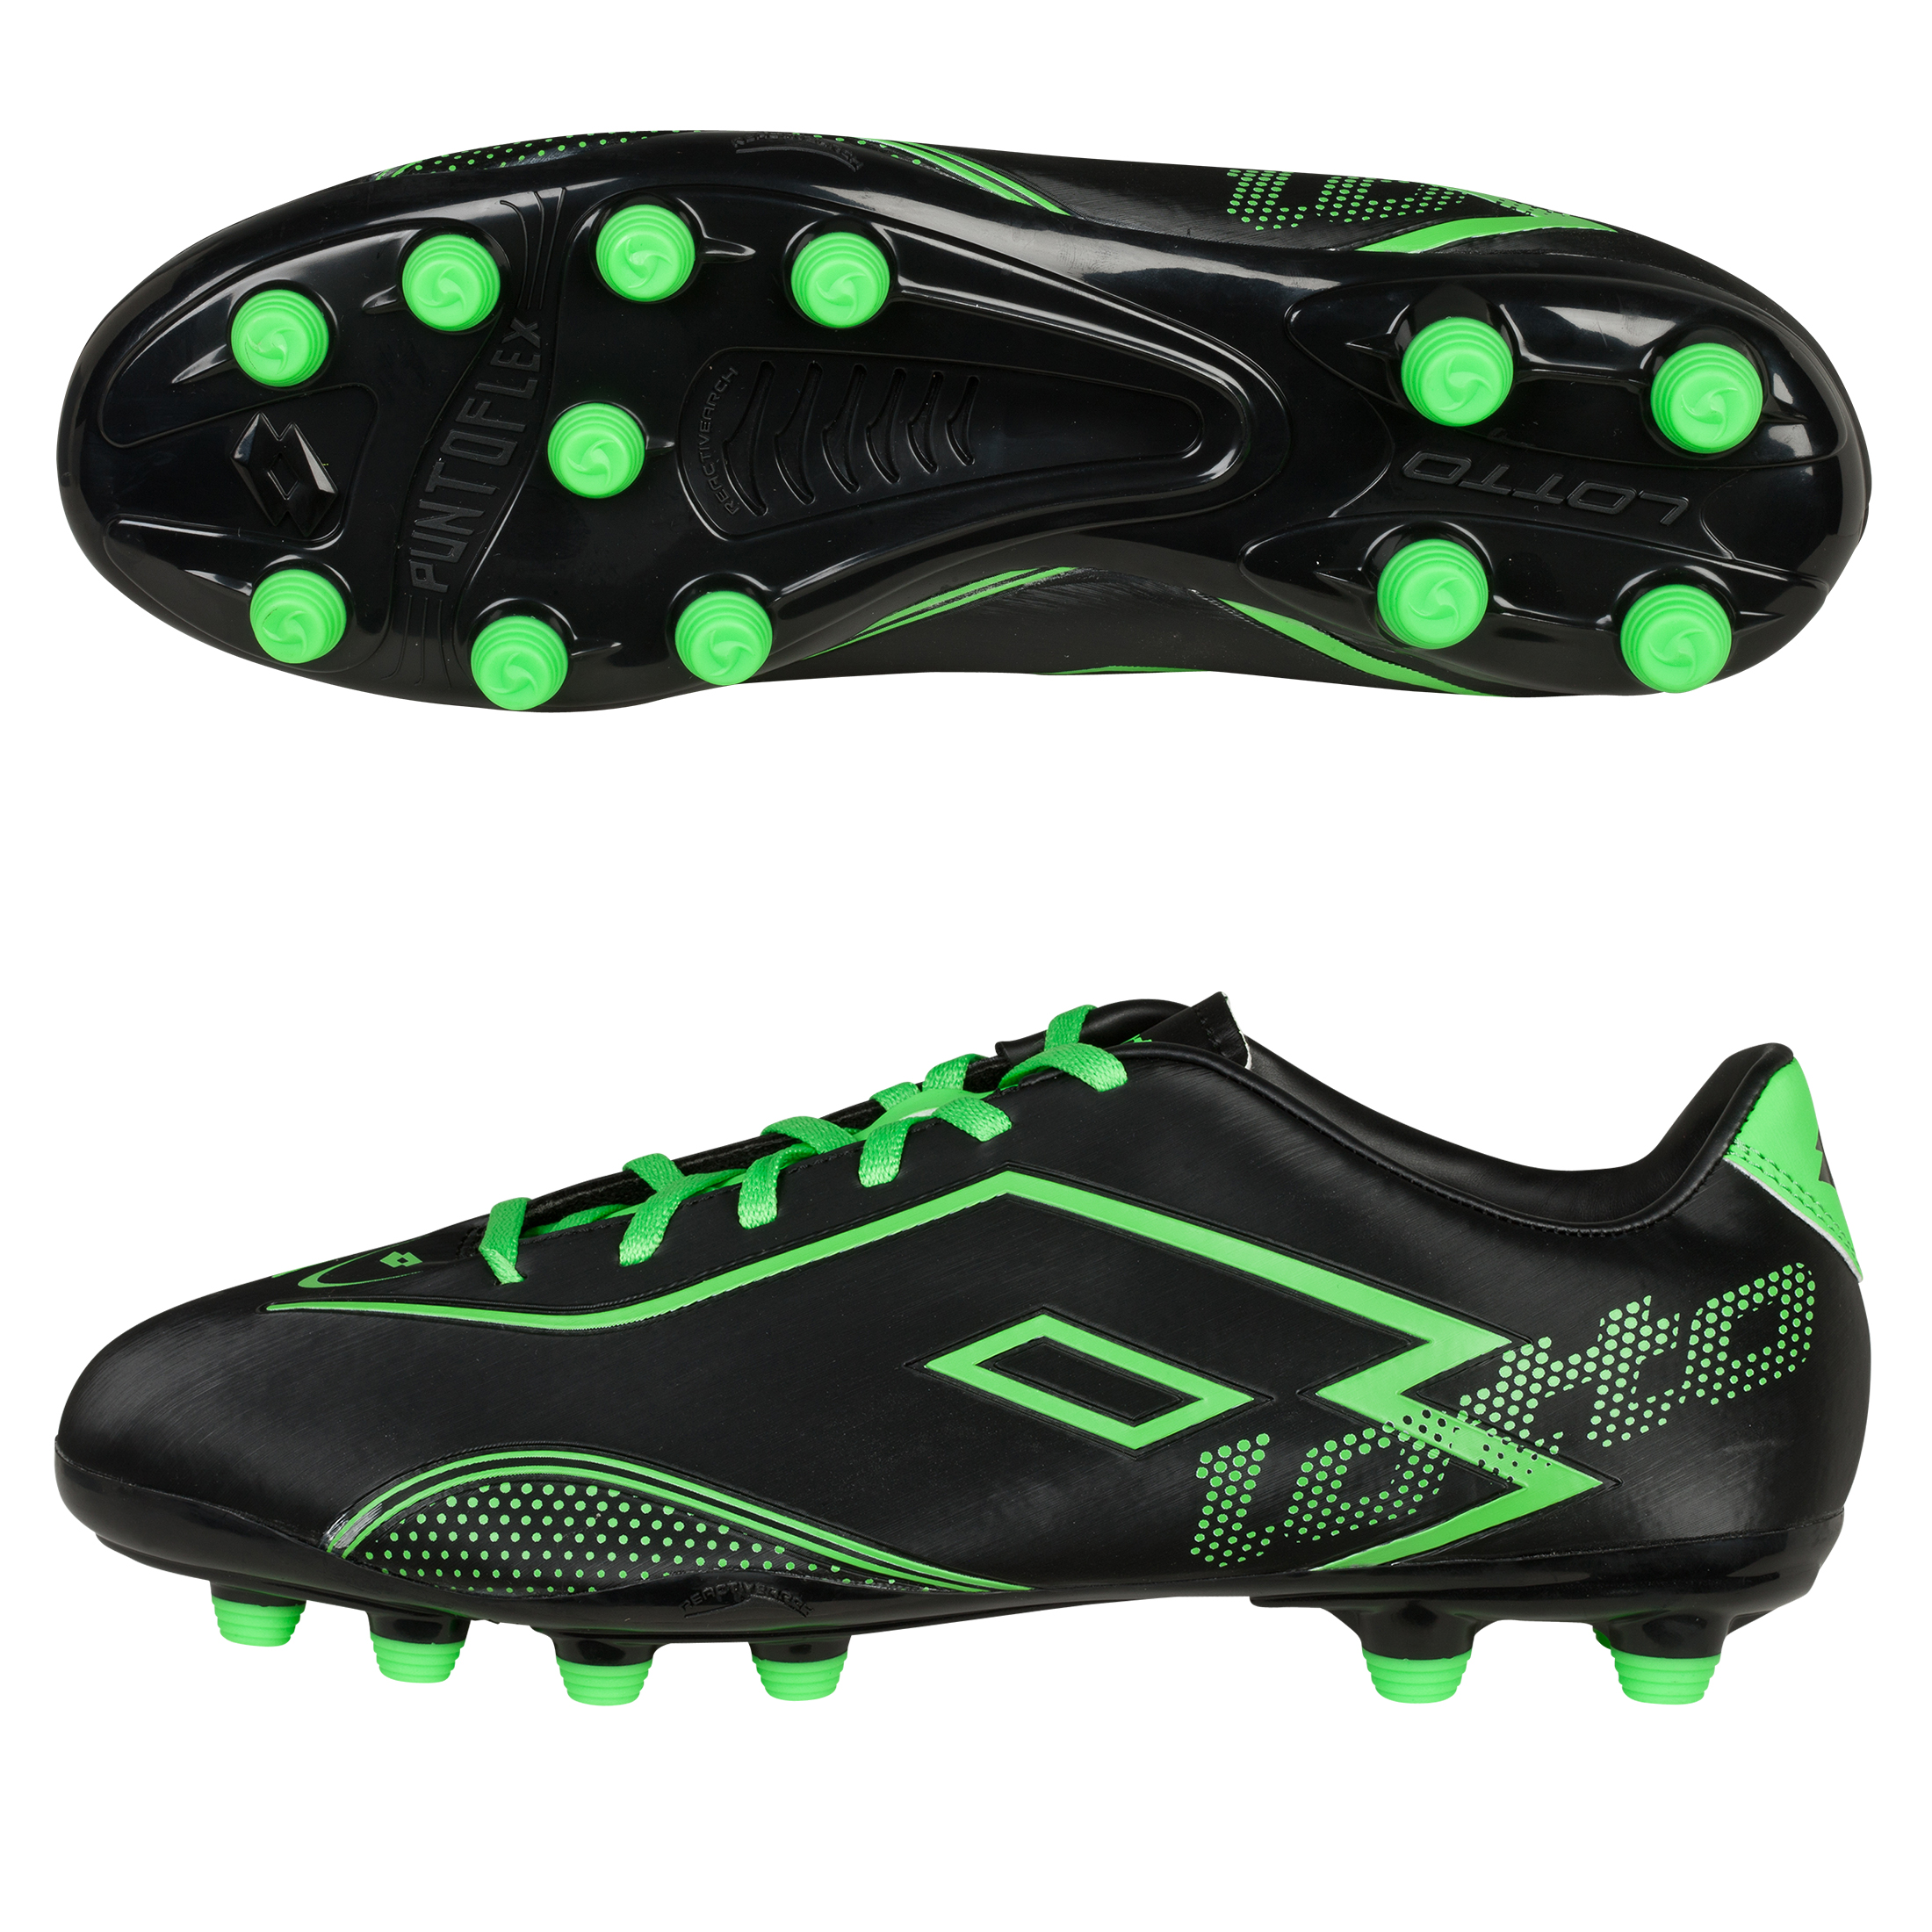 Lotto Zhero Gravity.II 700 Firm Ground Football Boots - Black/MN Green